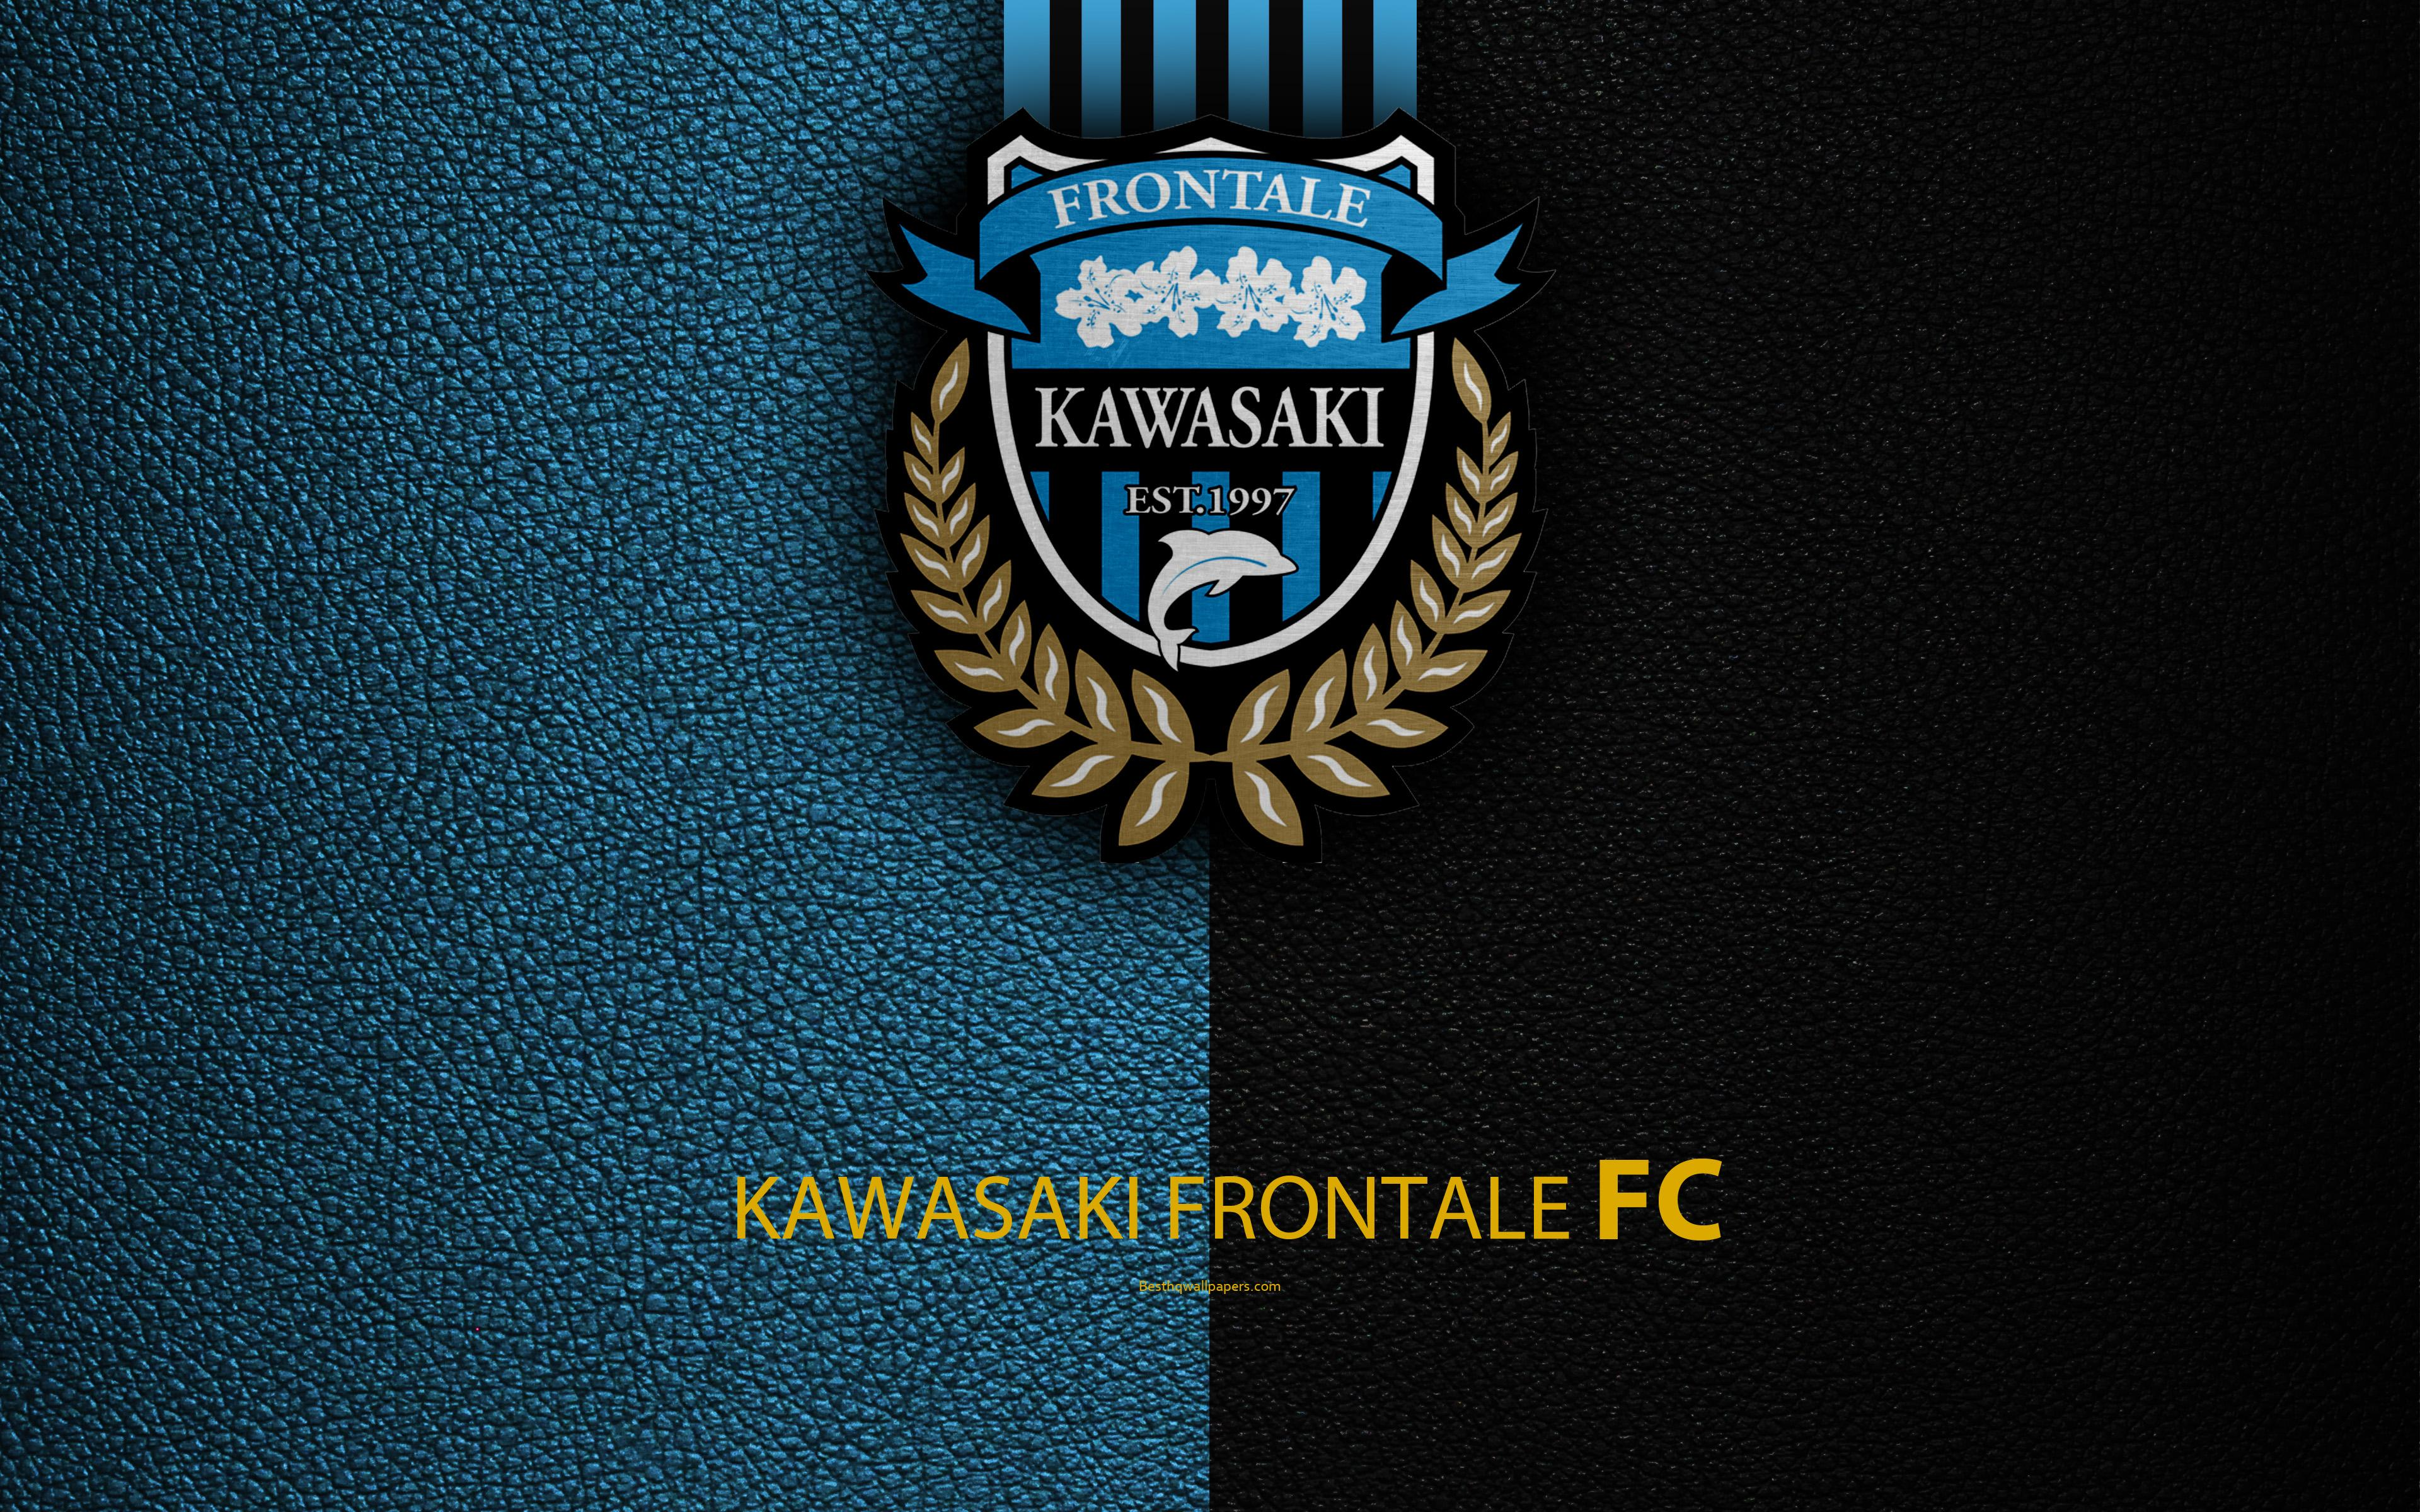 Download wallpapers Kawasaki Frontale FC, 4k, logo, leather texture